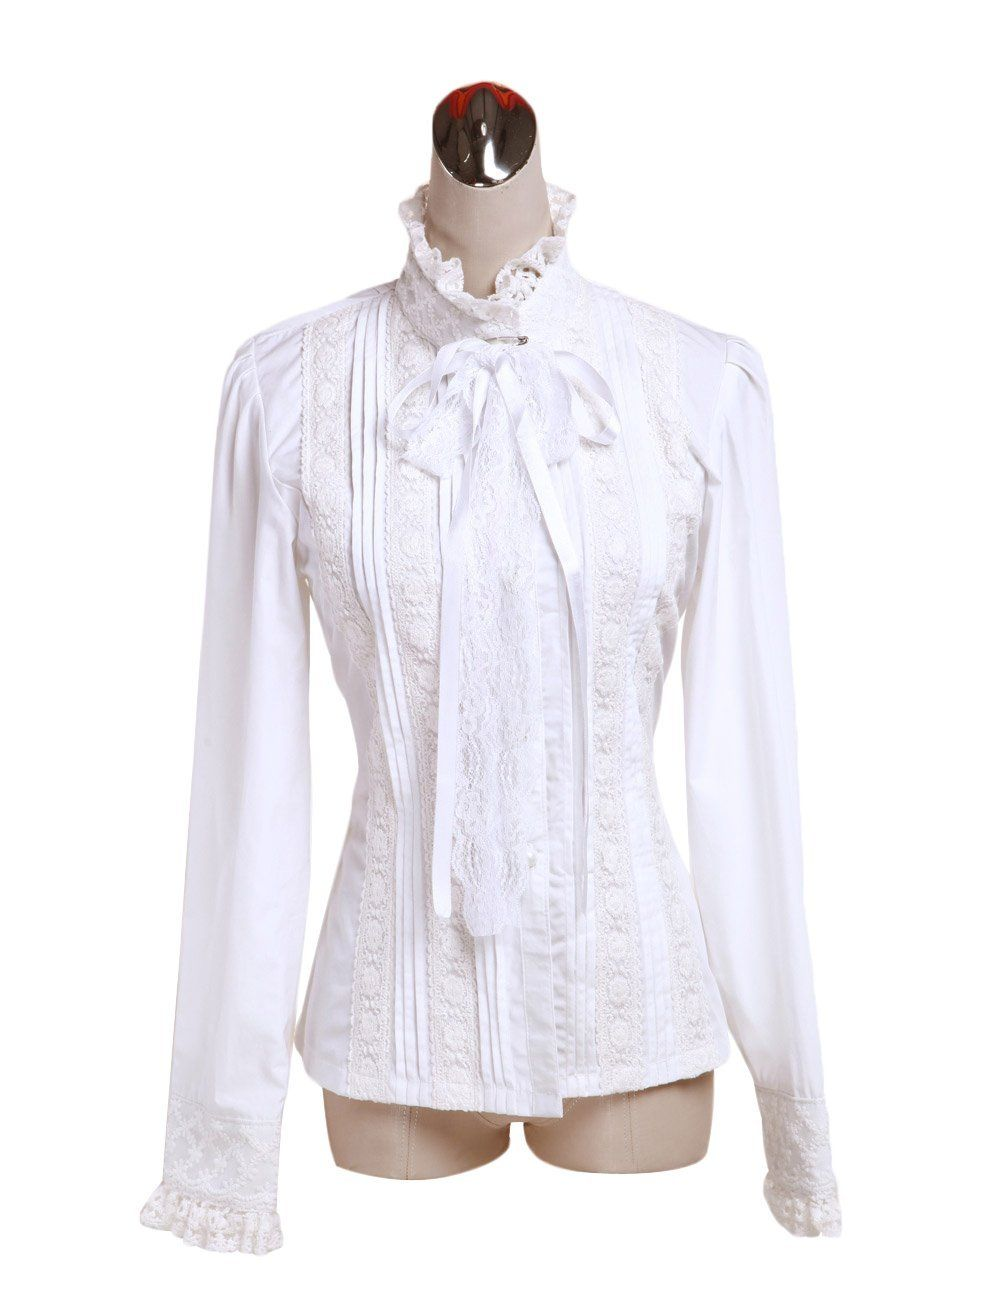 1d671633617b1d Amazon.com: ZKCostume Women's Cotton White Lace Ruffle Gothic Standing  Collar Victorian Shirt Blouse: Clothing